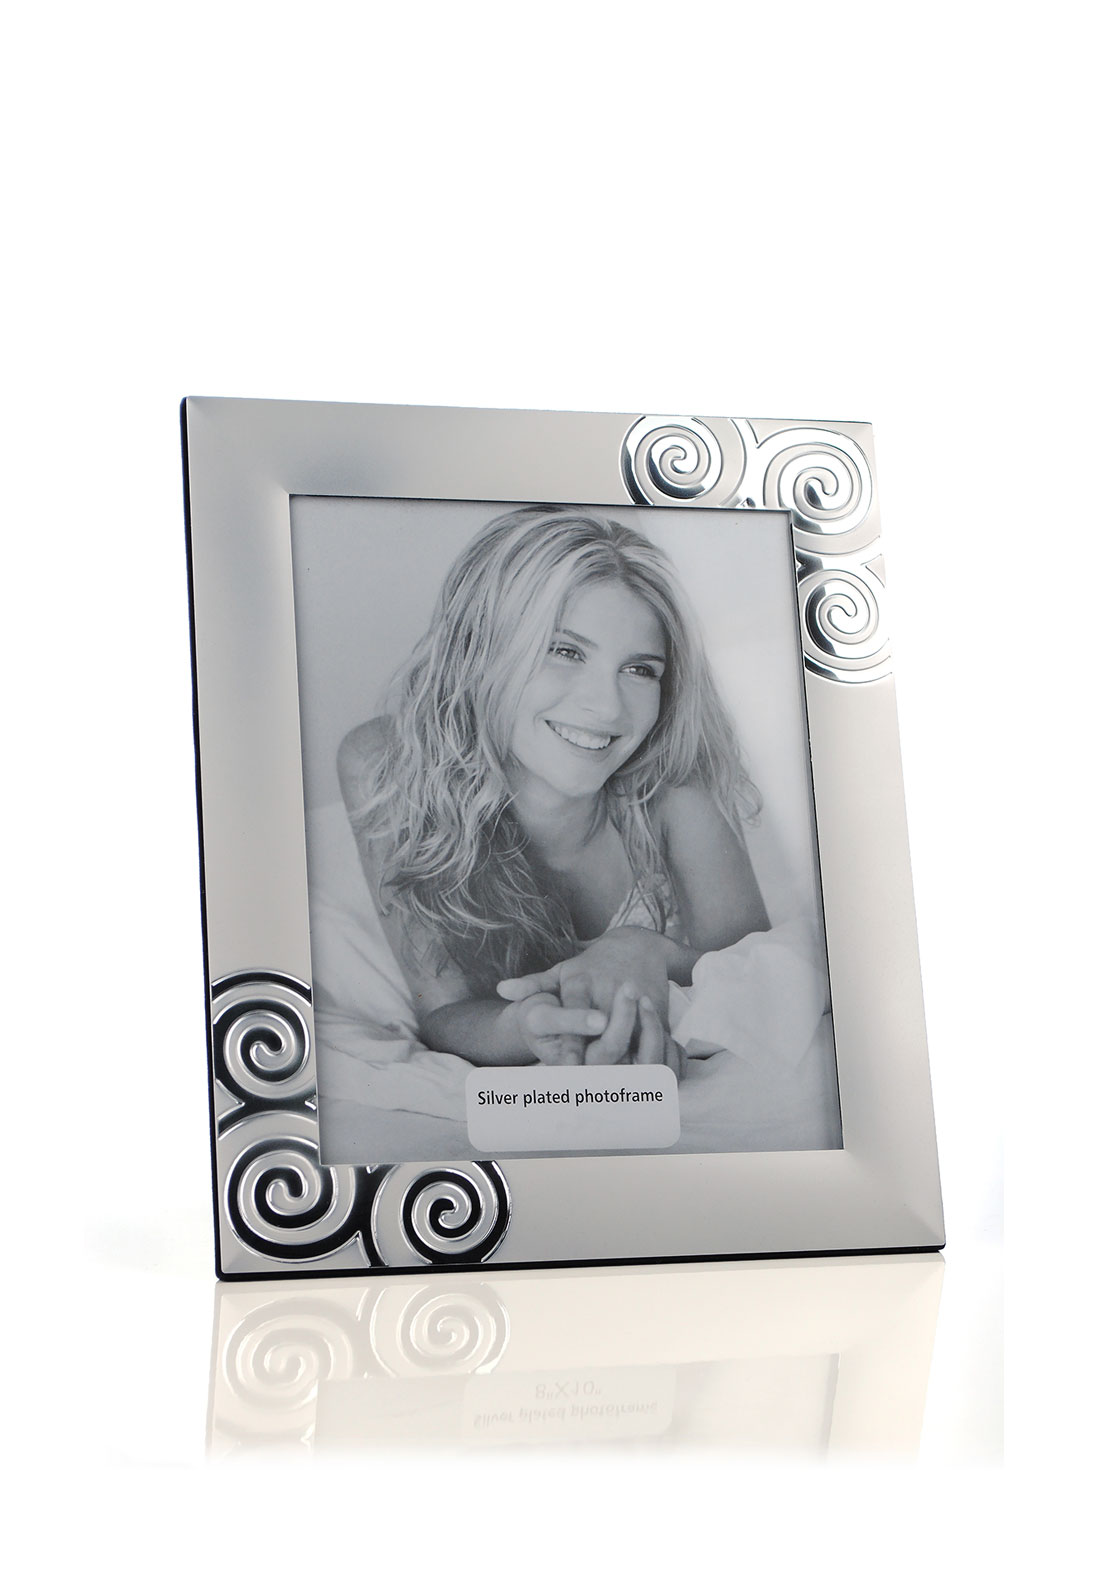 Frame It Silver Plated Photo Frame, 4 x 6 inches